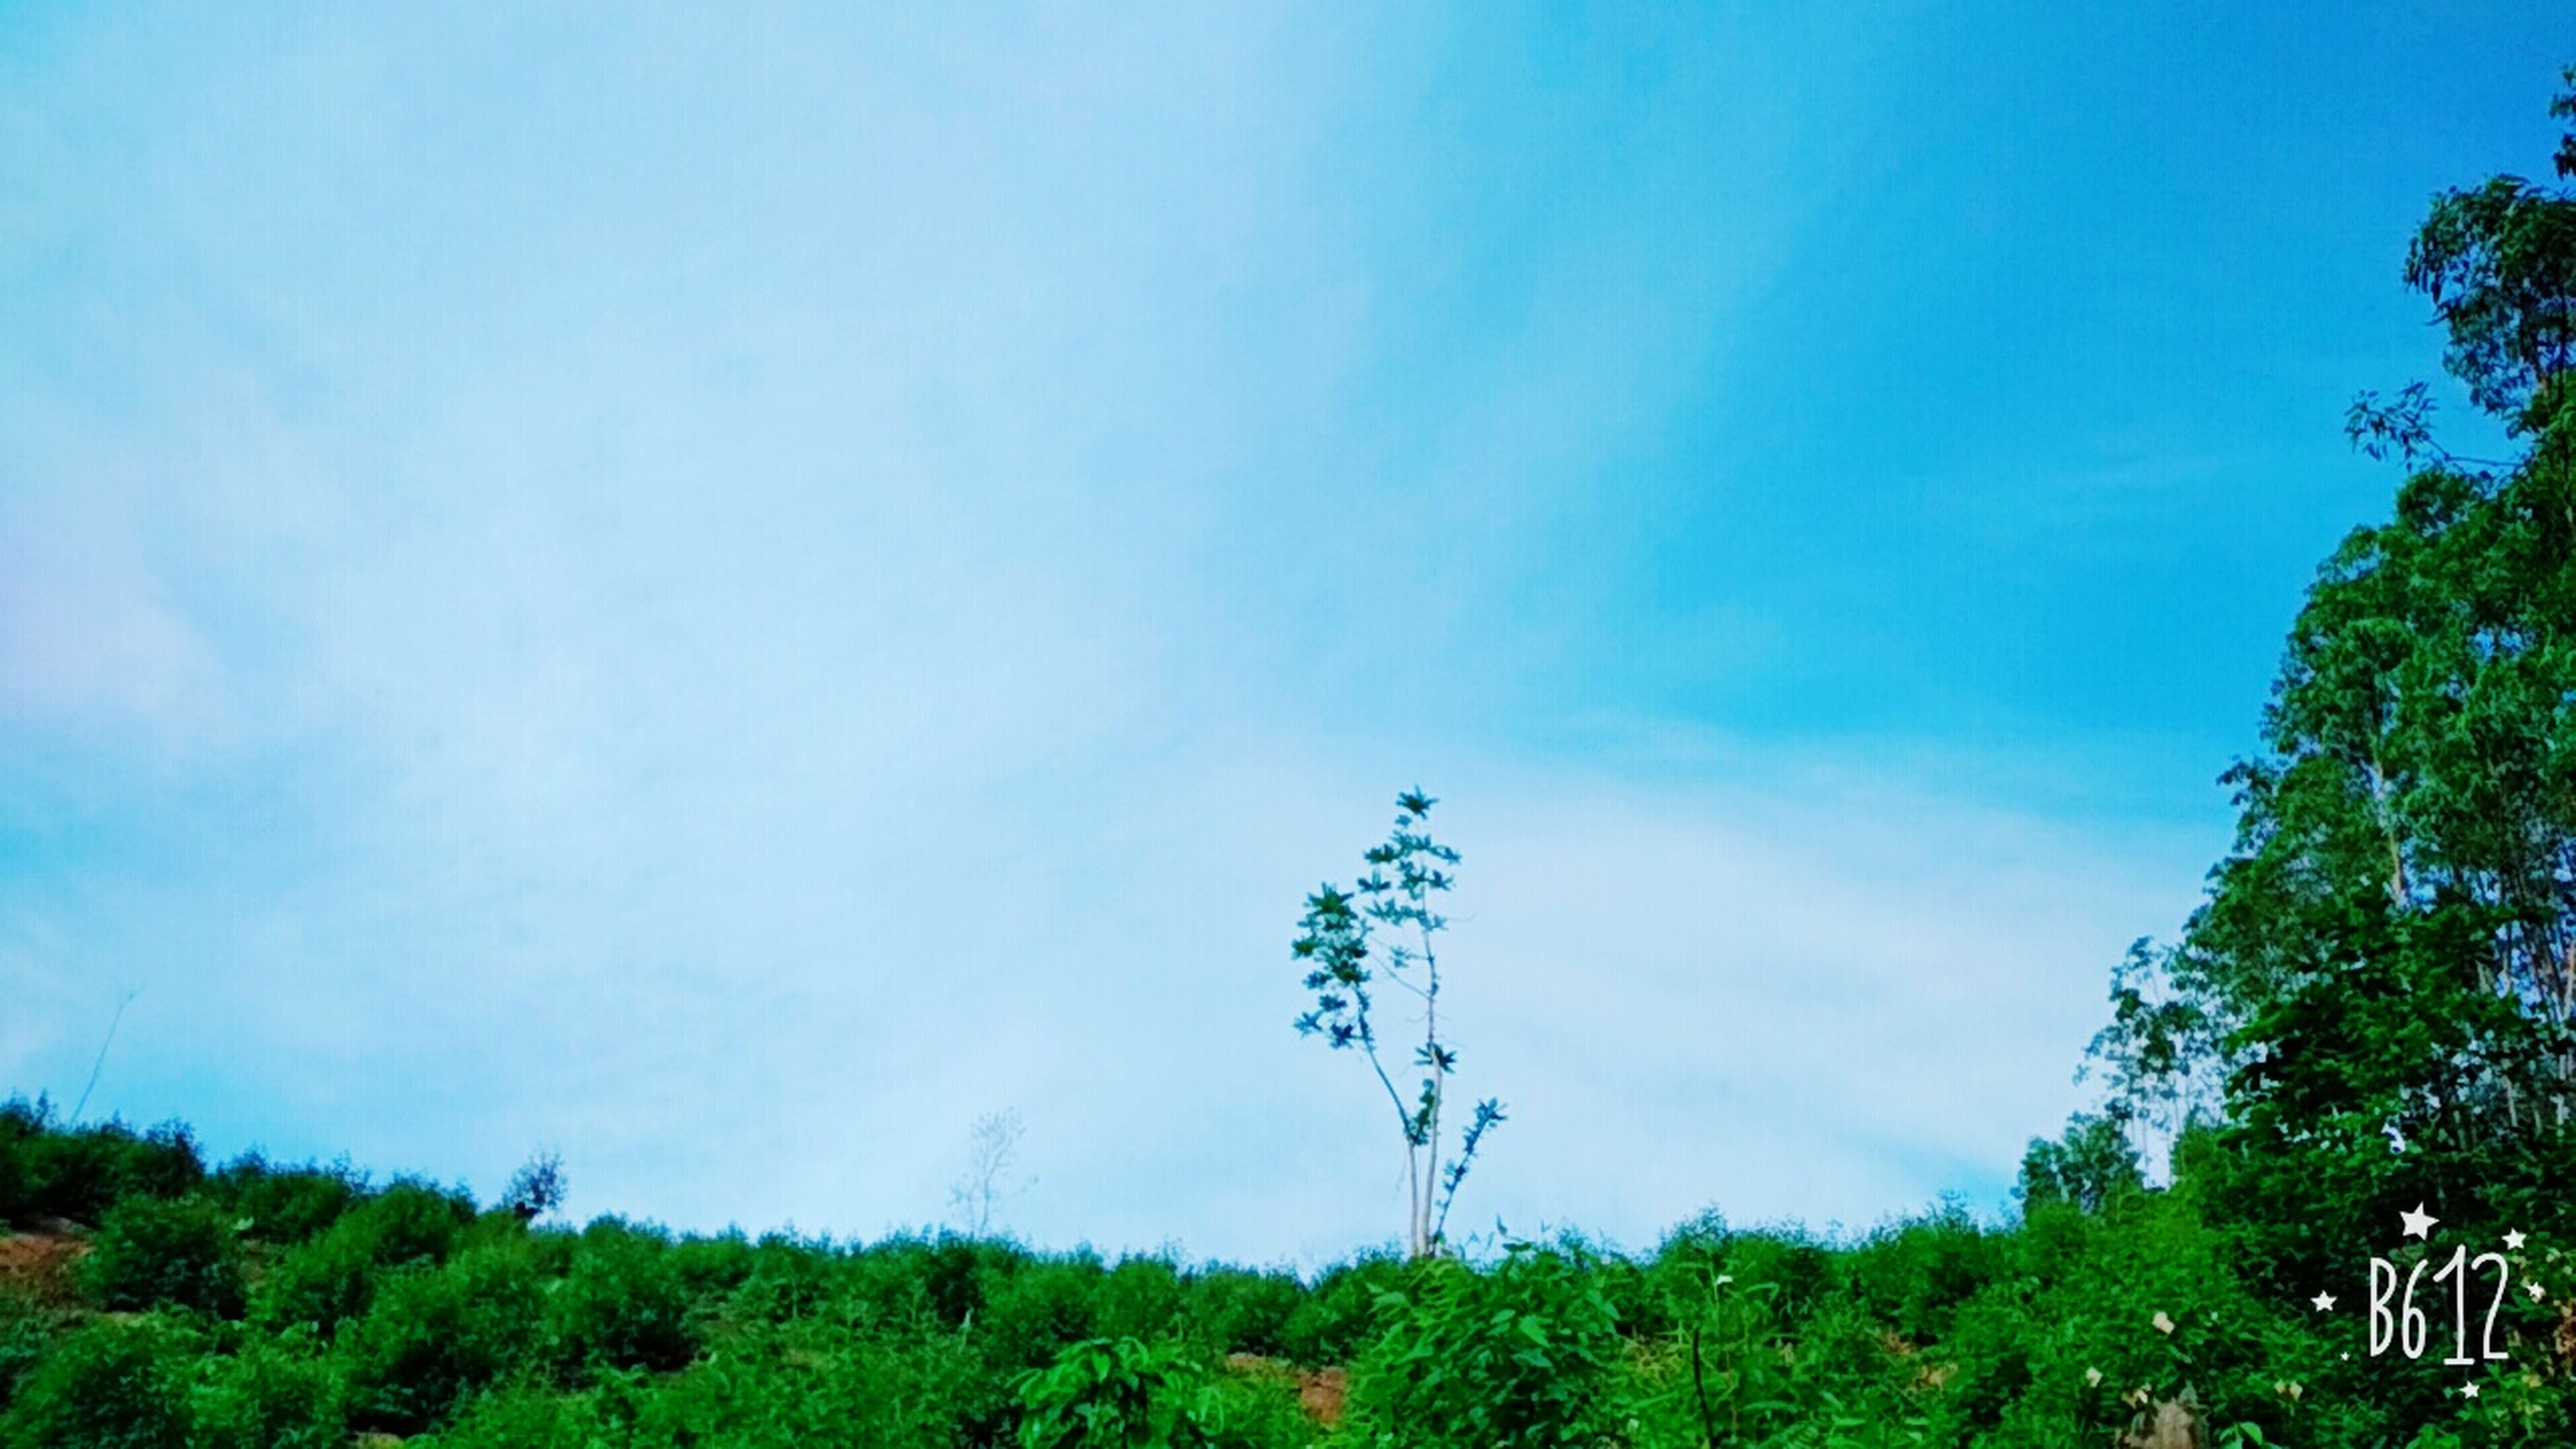 nature, tree, growth, beauty in nature, green color, day, tranquil scene, plant, outdoors, field, tranquility, blue, no people, grass, scenics, landscape, rural scene, animal themes, sky